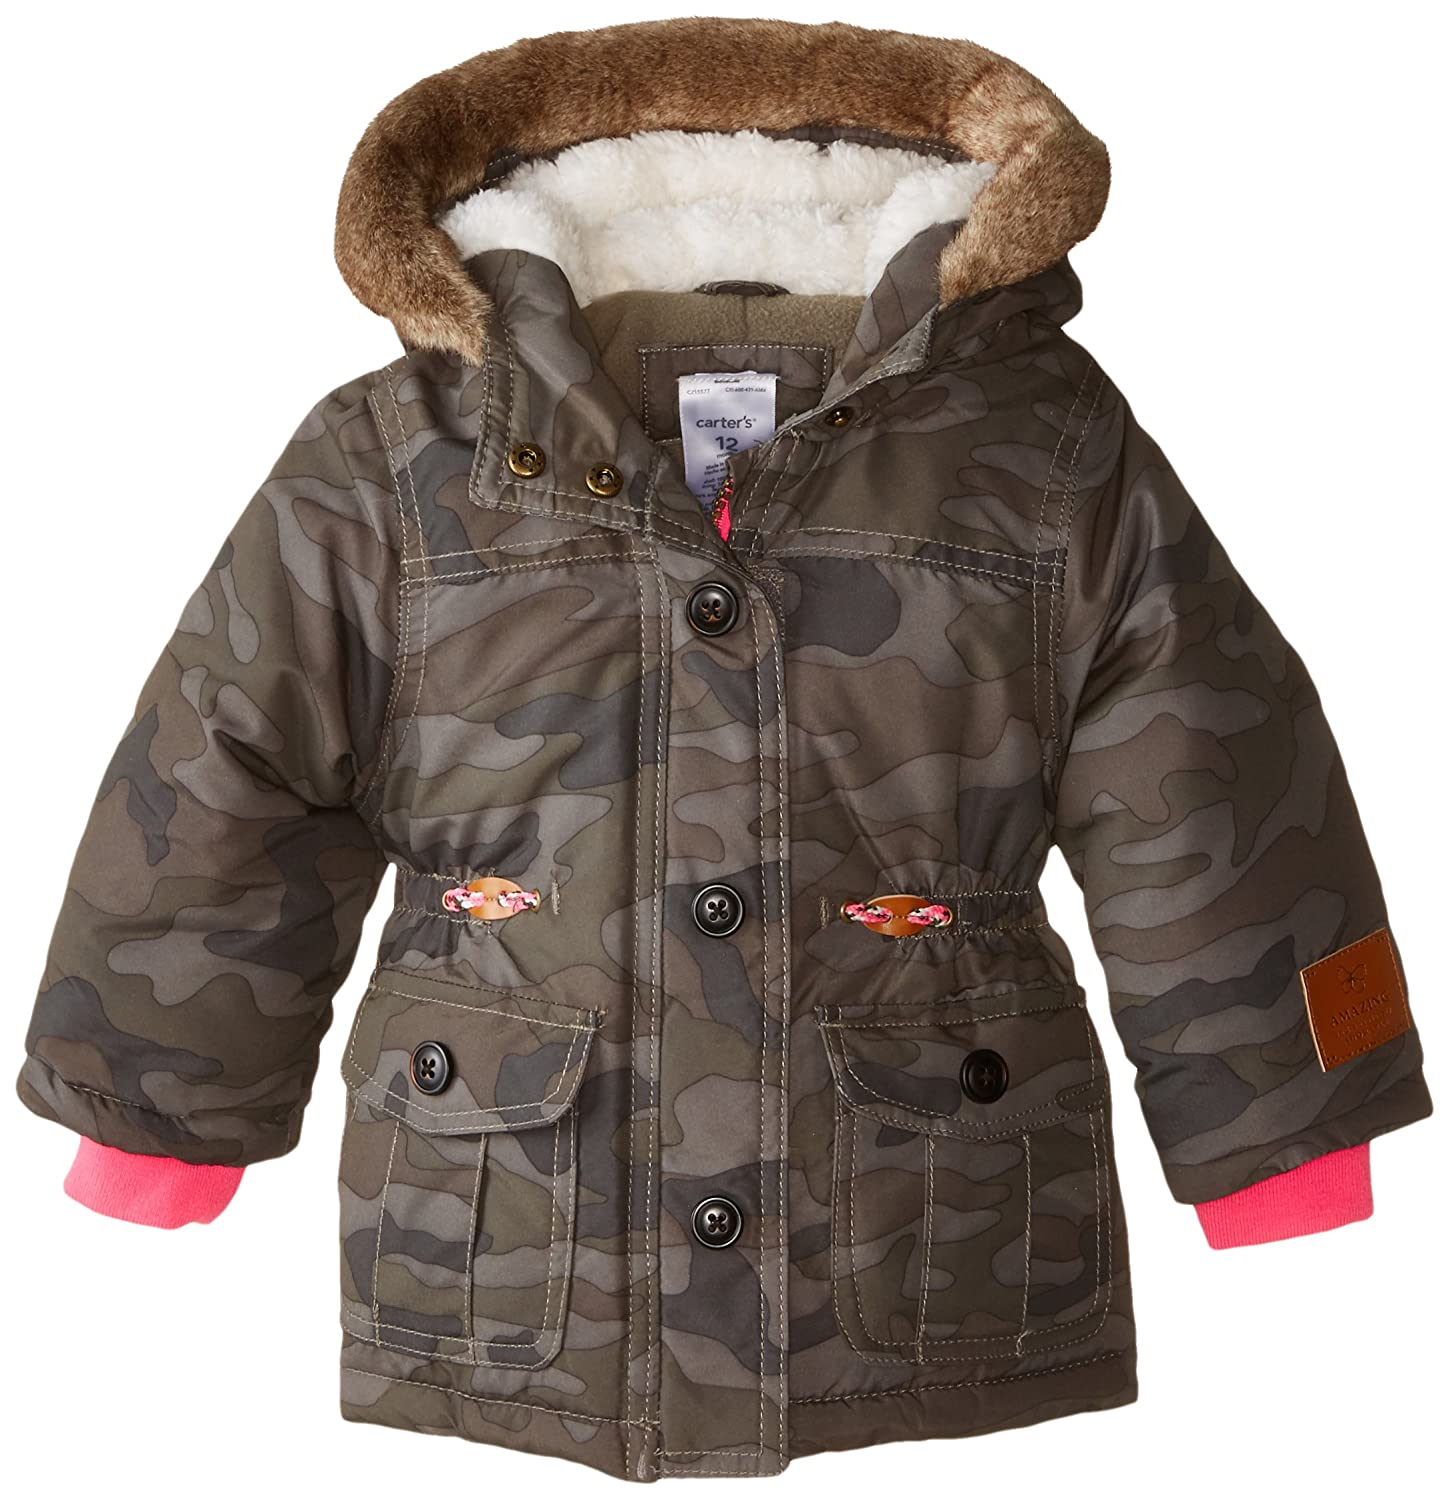 Carter's Baby Girls' Heavyweight Single Jacket Carter's C215577